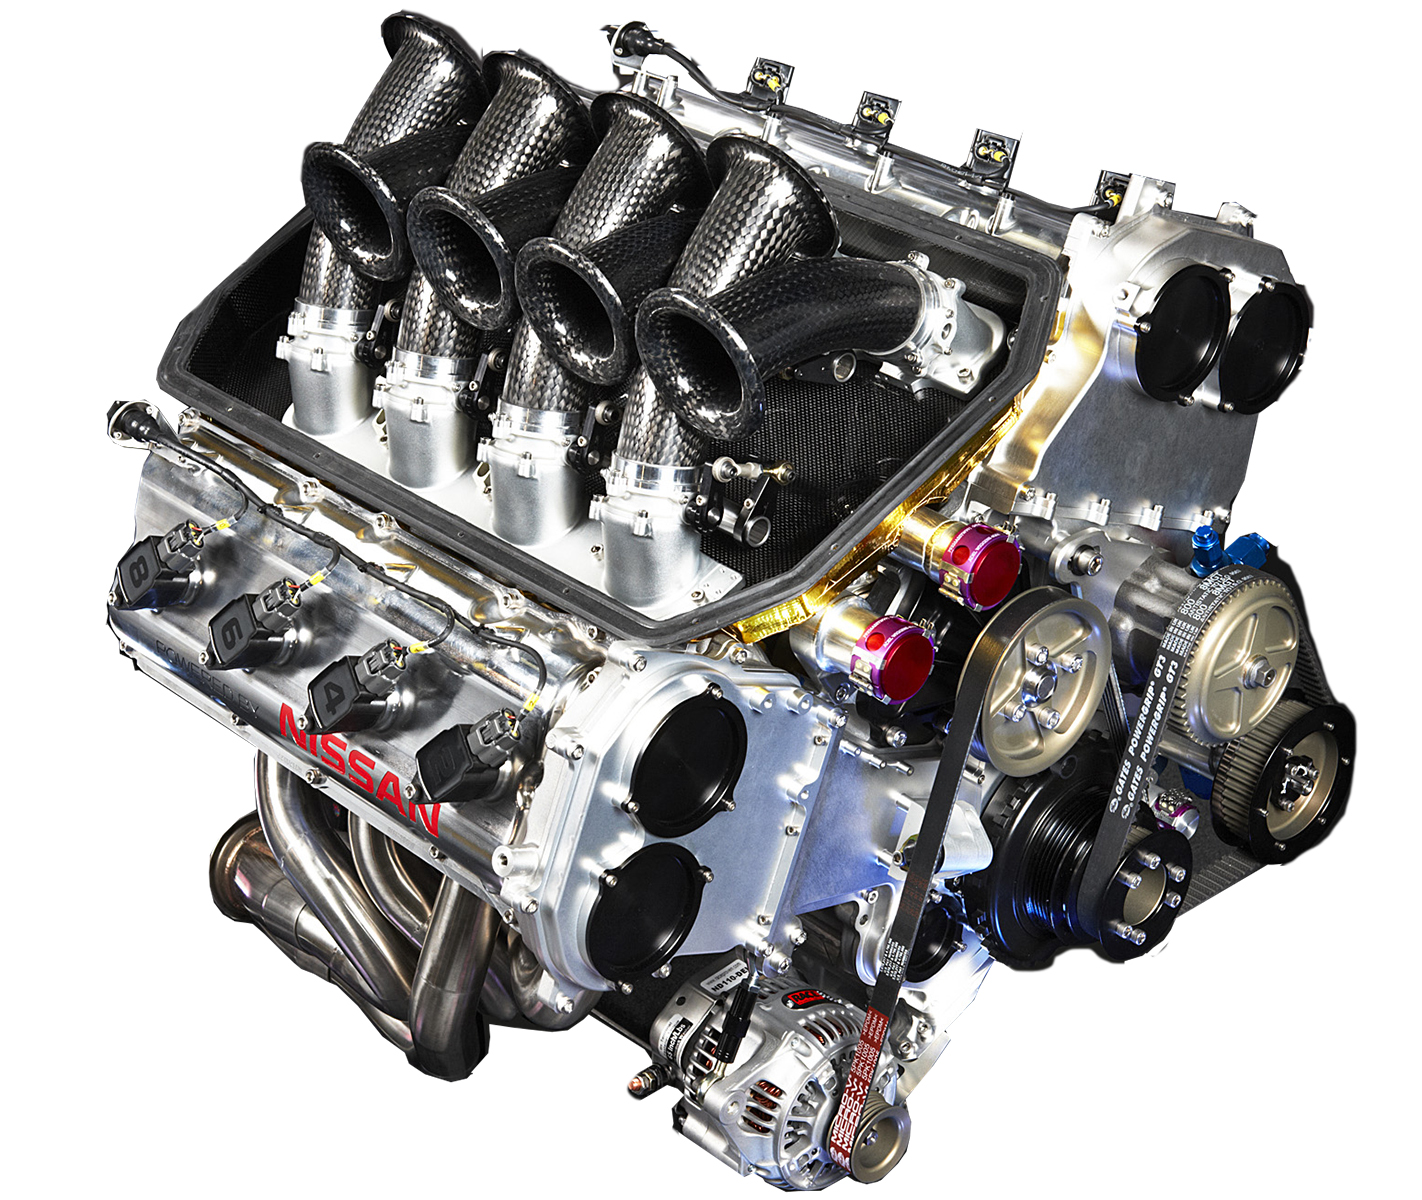 Nissan V8 Supercar engine